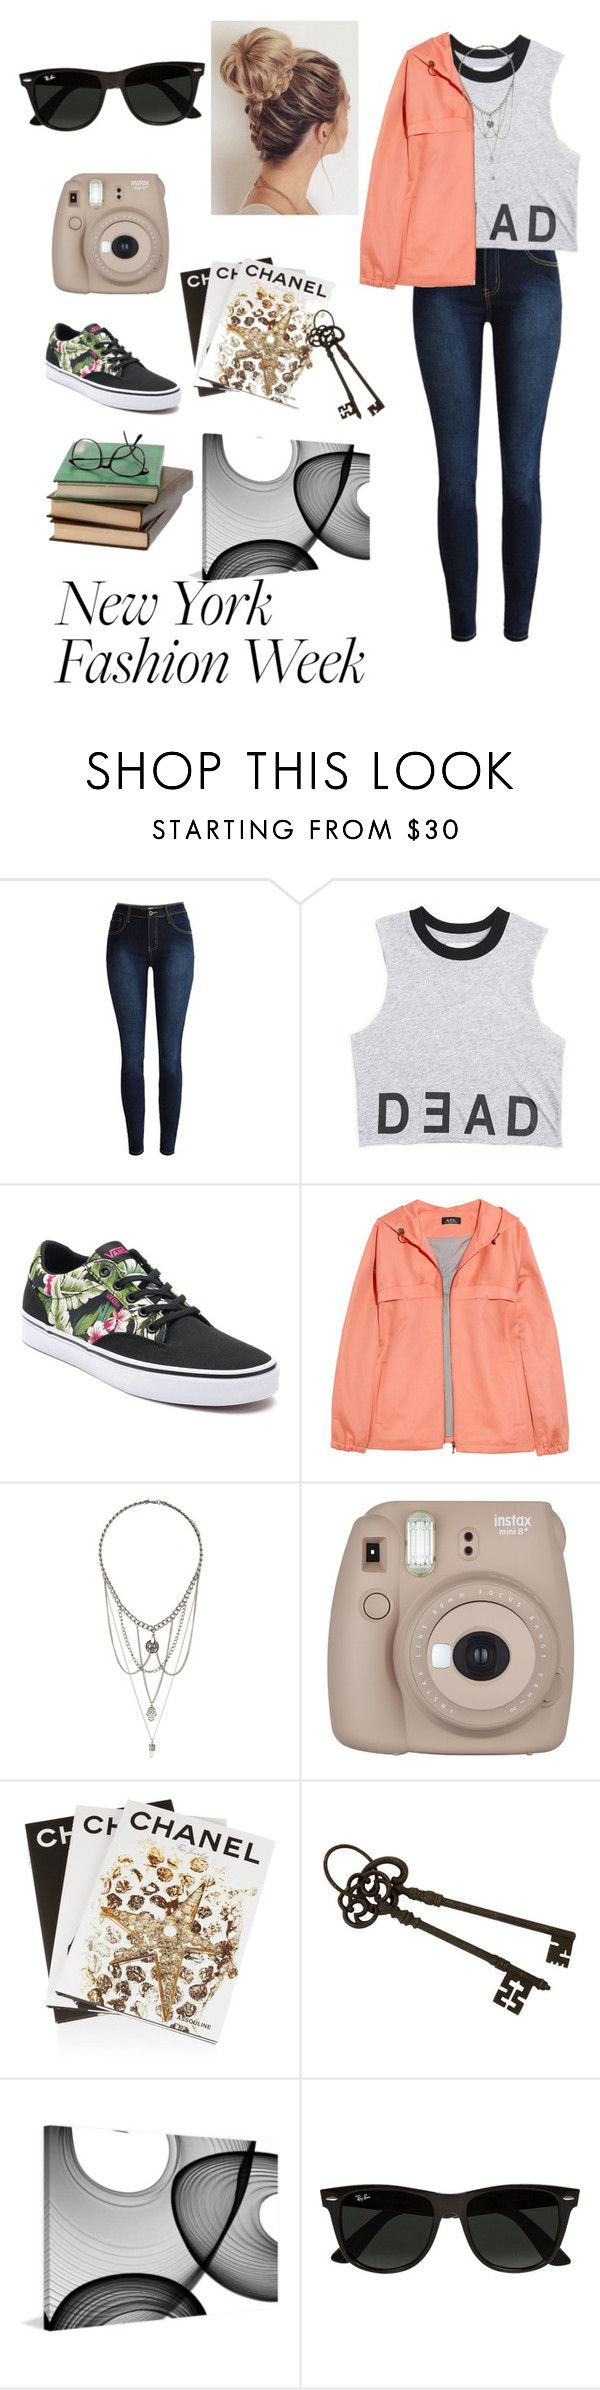 """""""New York Fashion week"""" by kmagana12 ❤ liked on Polyvore featuring Vans, A.P.C., Topshop, Fujifilm, Assouline Publishing, IMAX Corporation, Marmont Hill and Ray-Ban"""